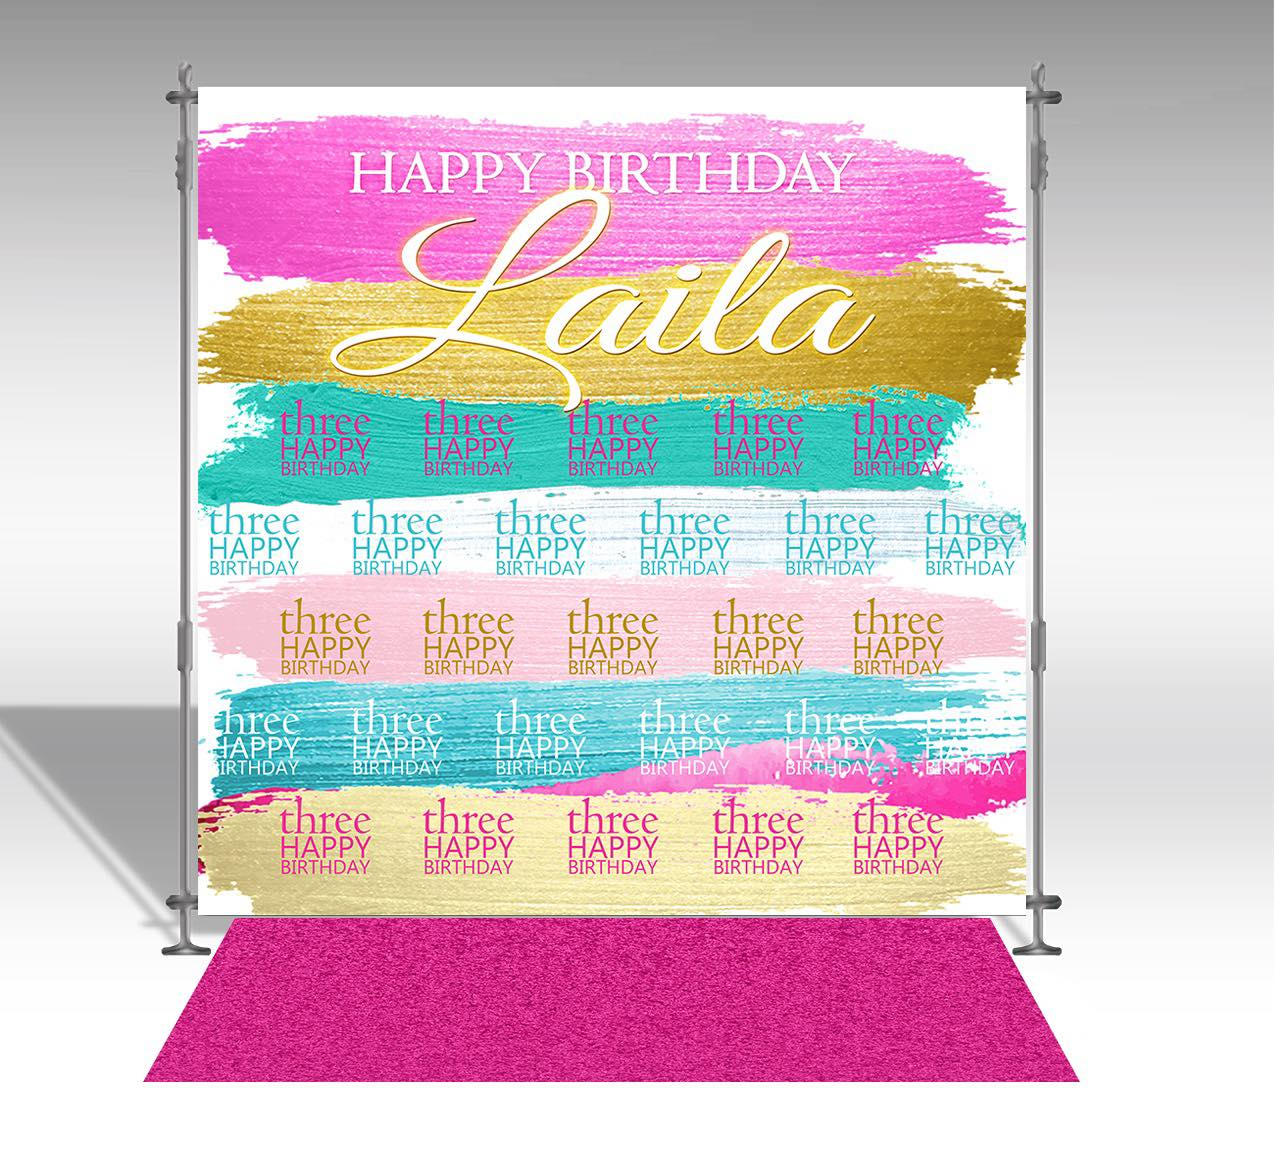 8'x8' backdrop banner